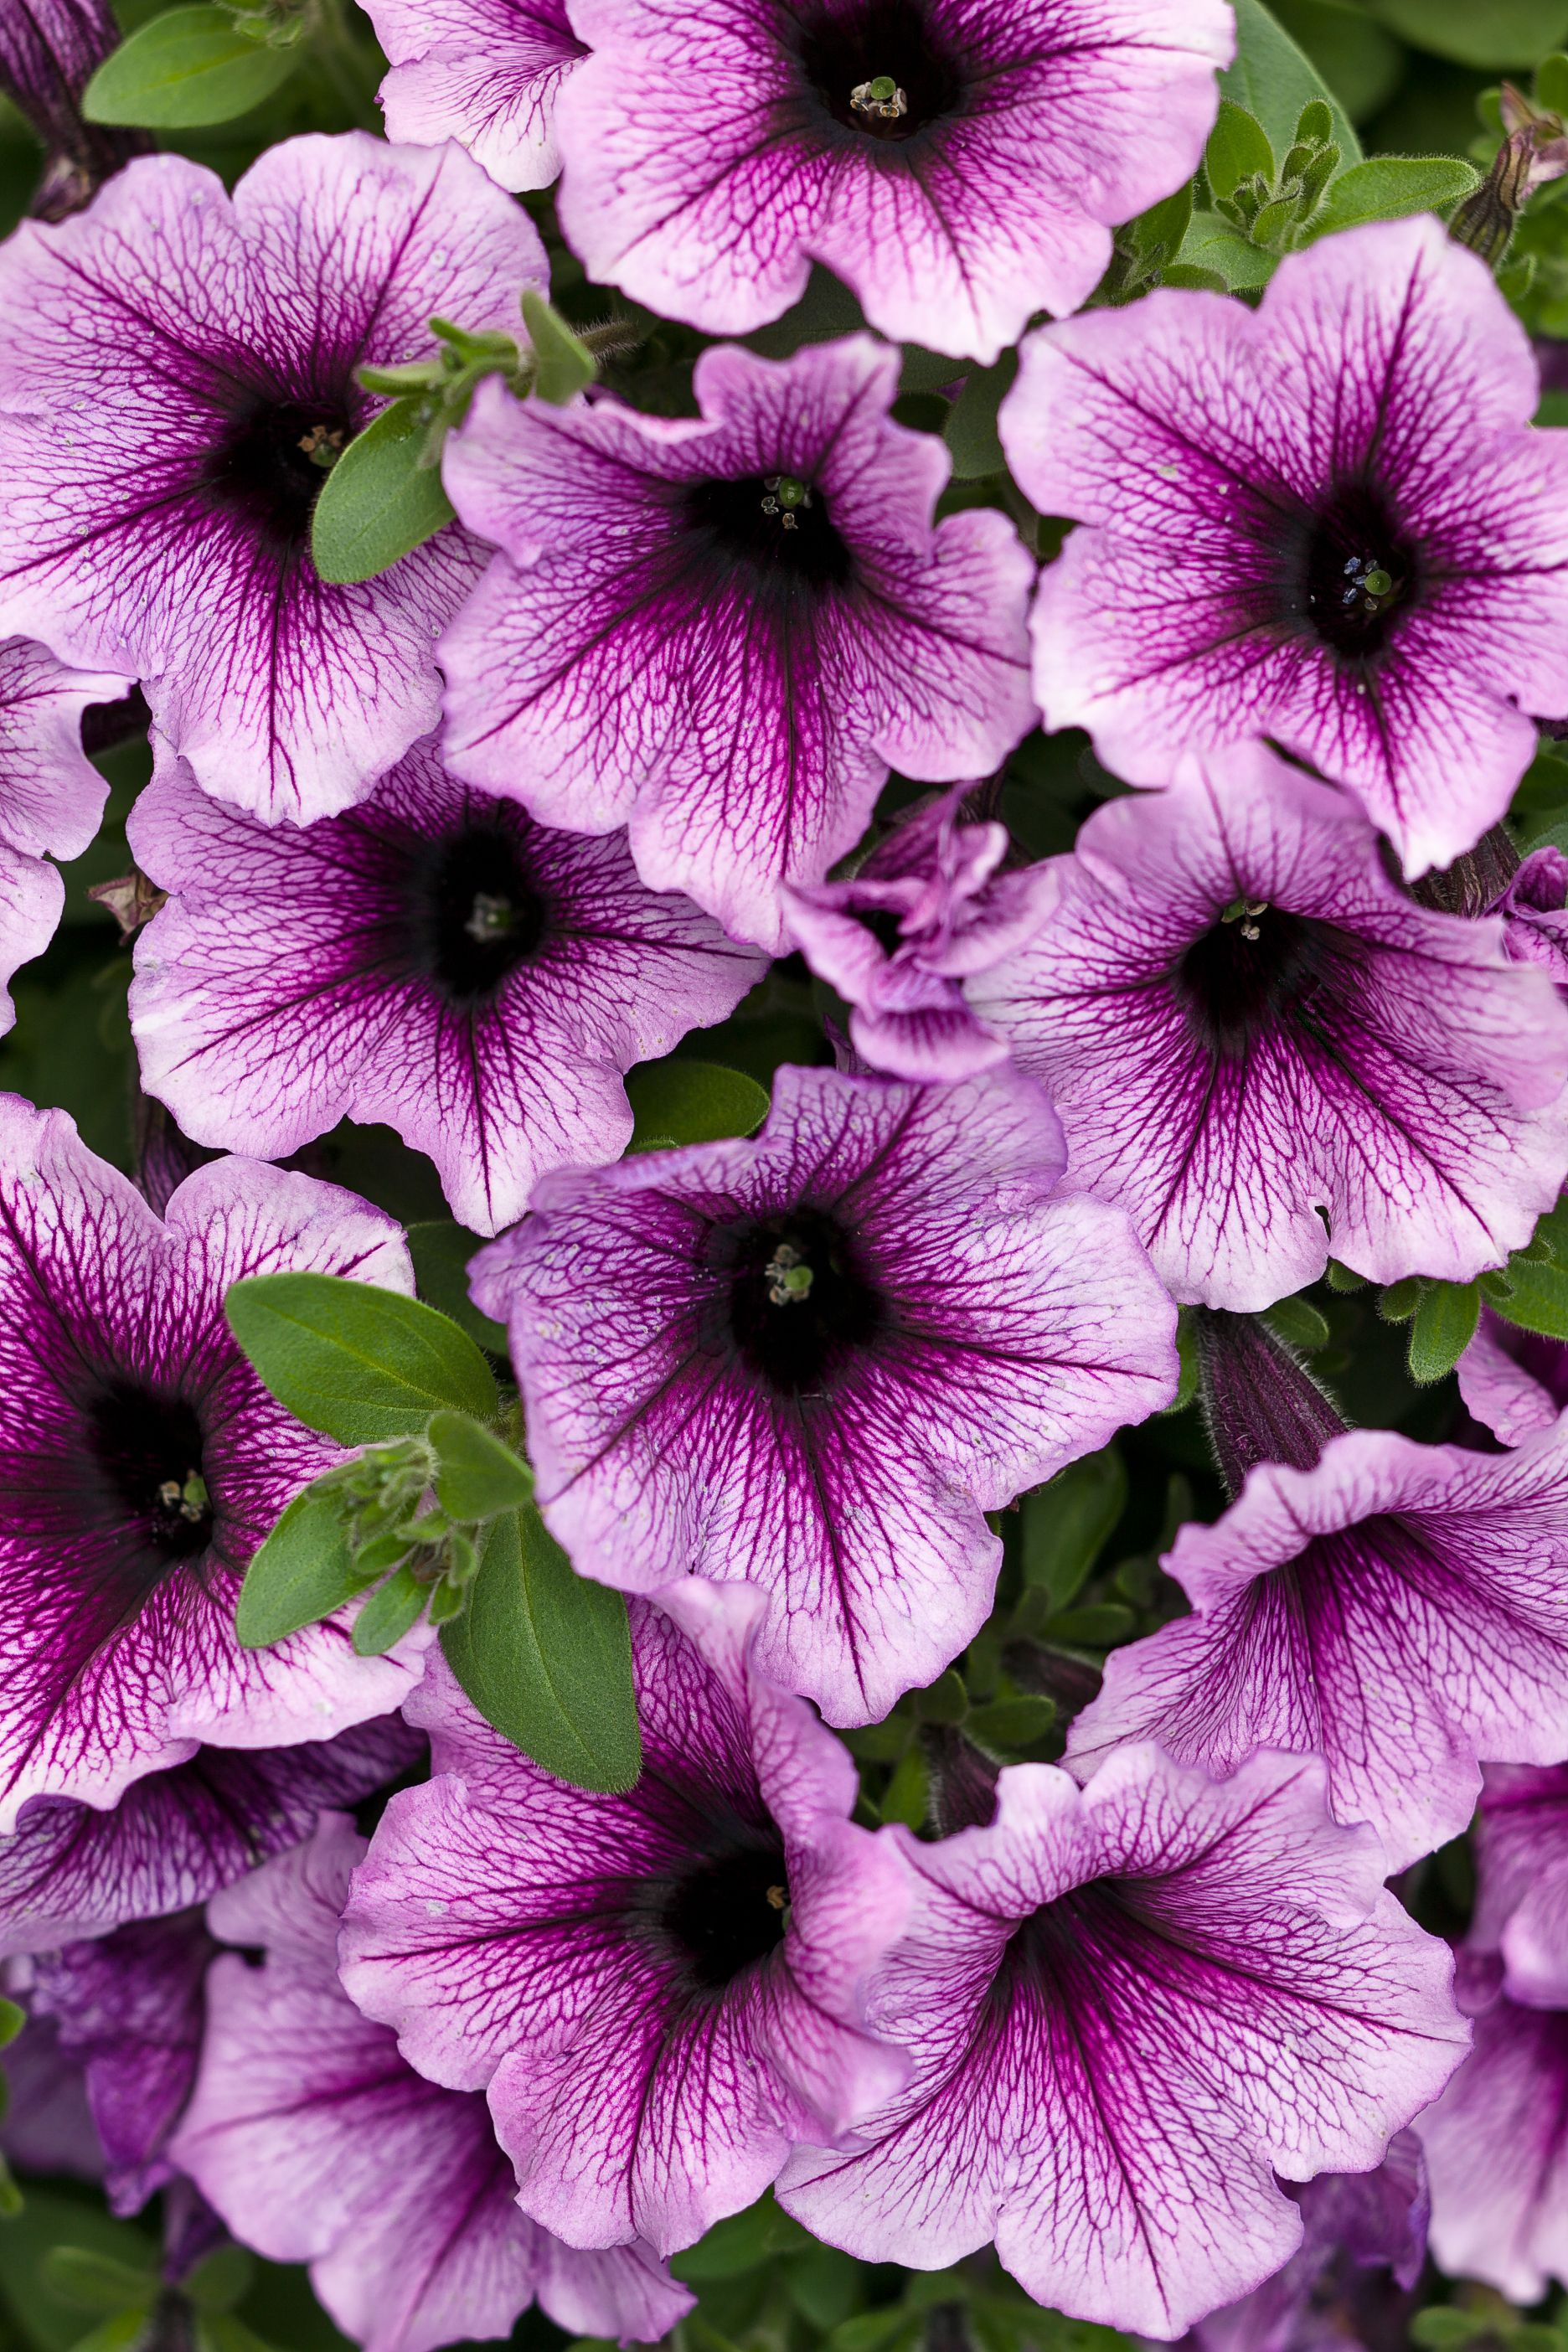 Pin By Debbie Story On Flowers Pinterest Petunias Plants And